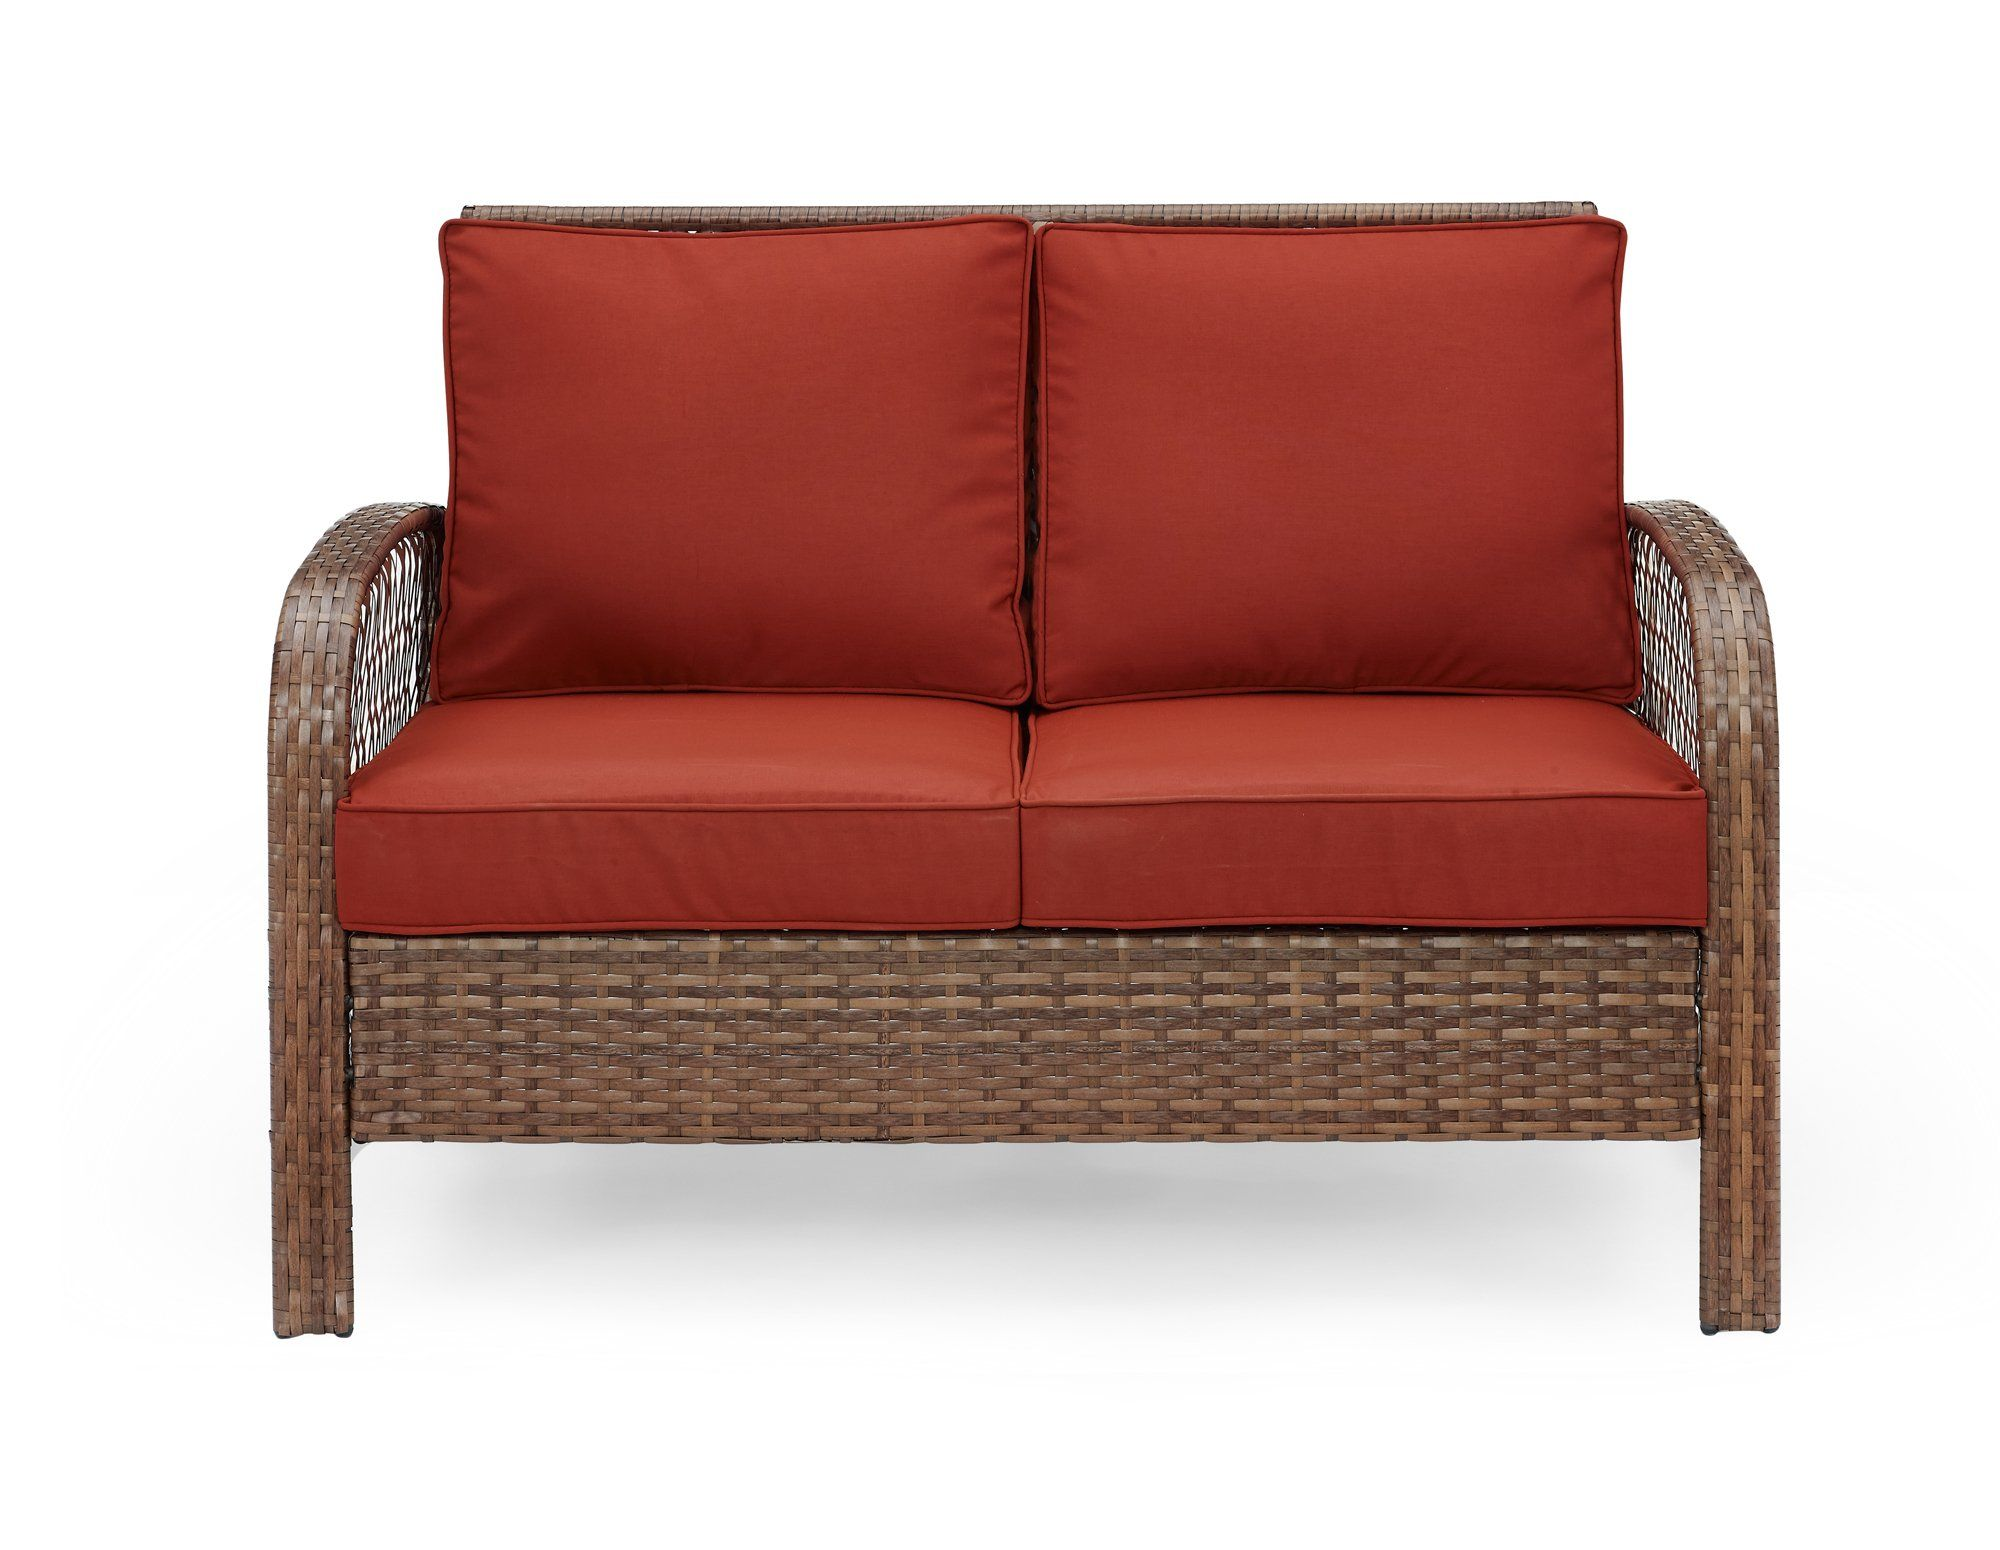 Ulax furniture piece outdoor patio deep seating group with cushion